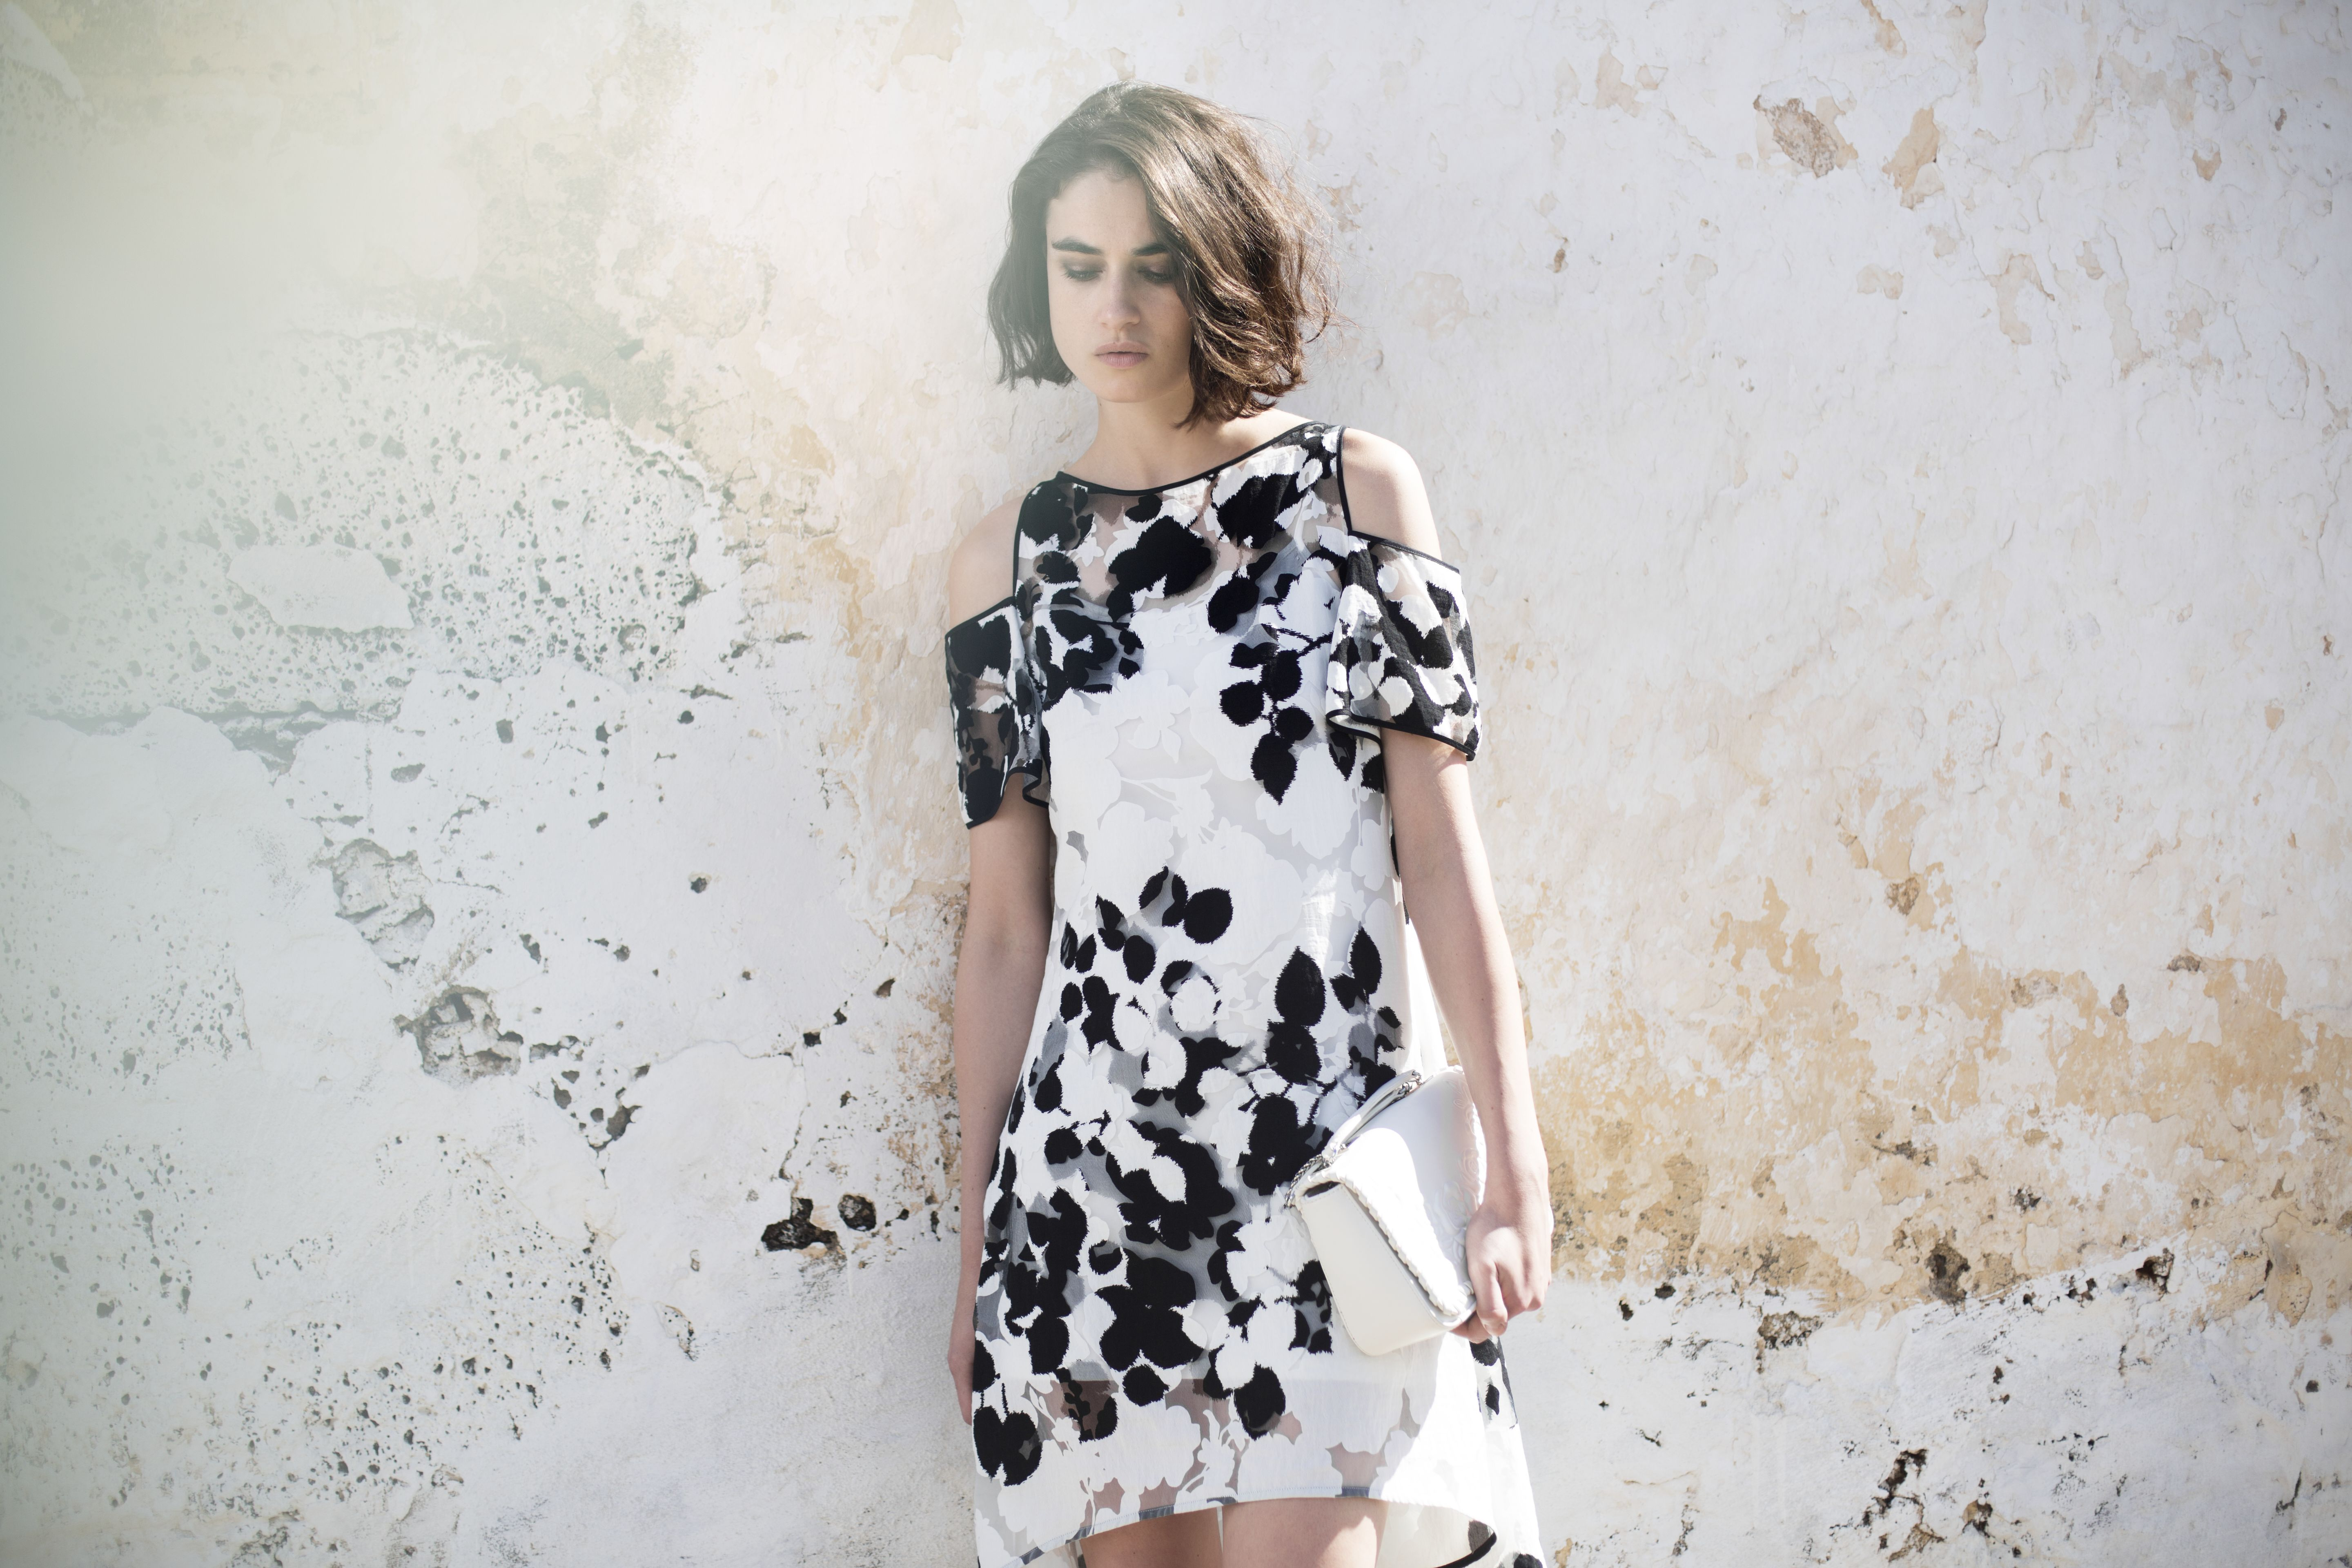 Black and white floral dress with cut out shoulders by Anne Fontaine